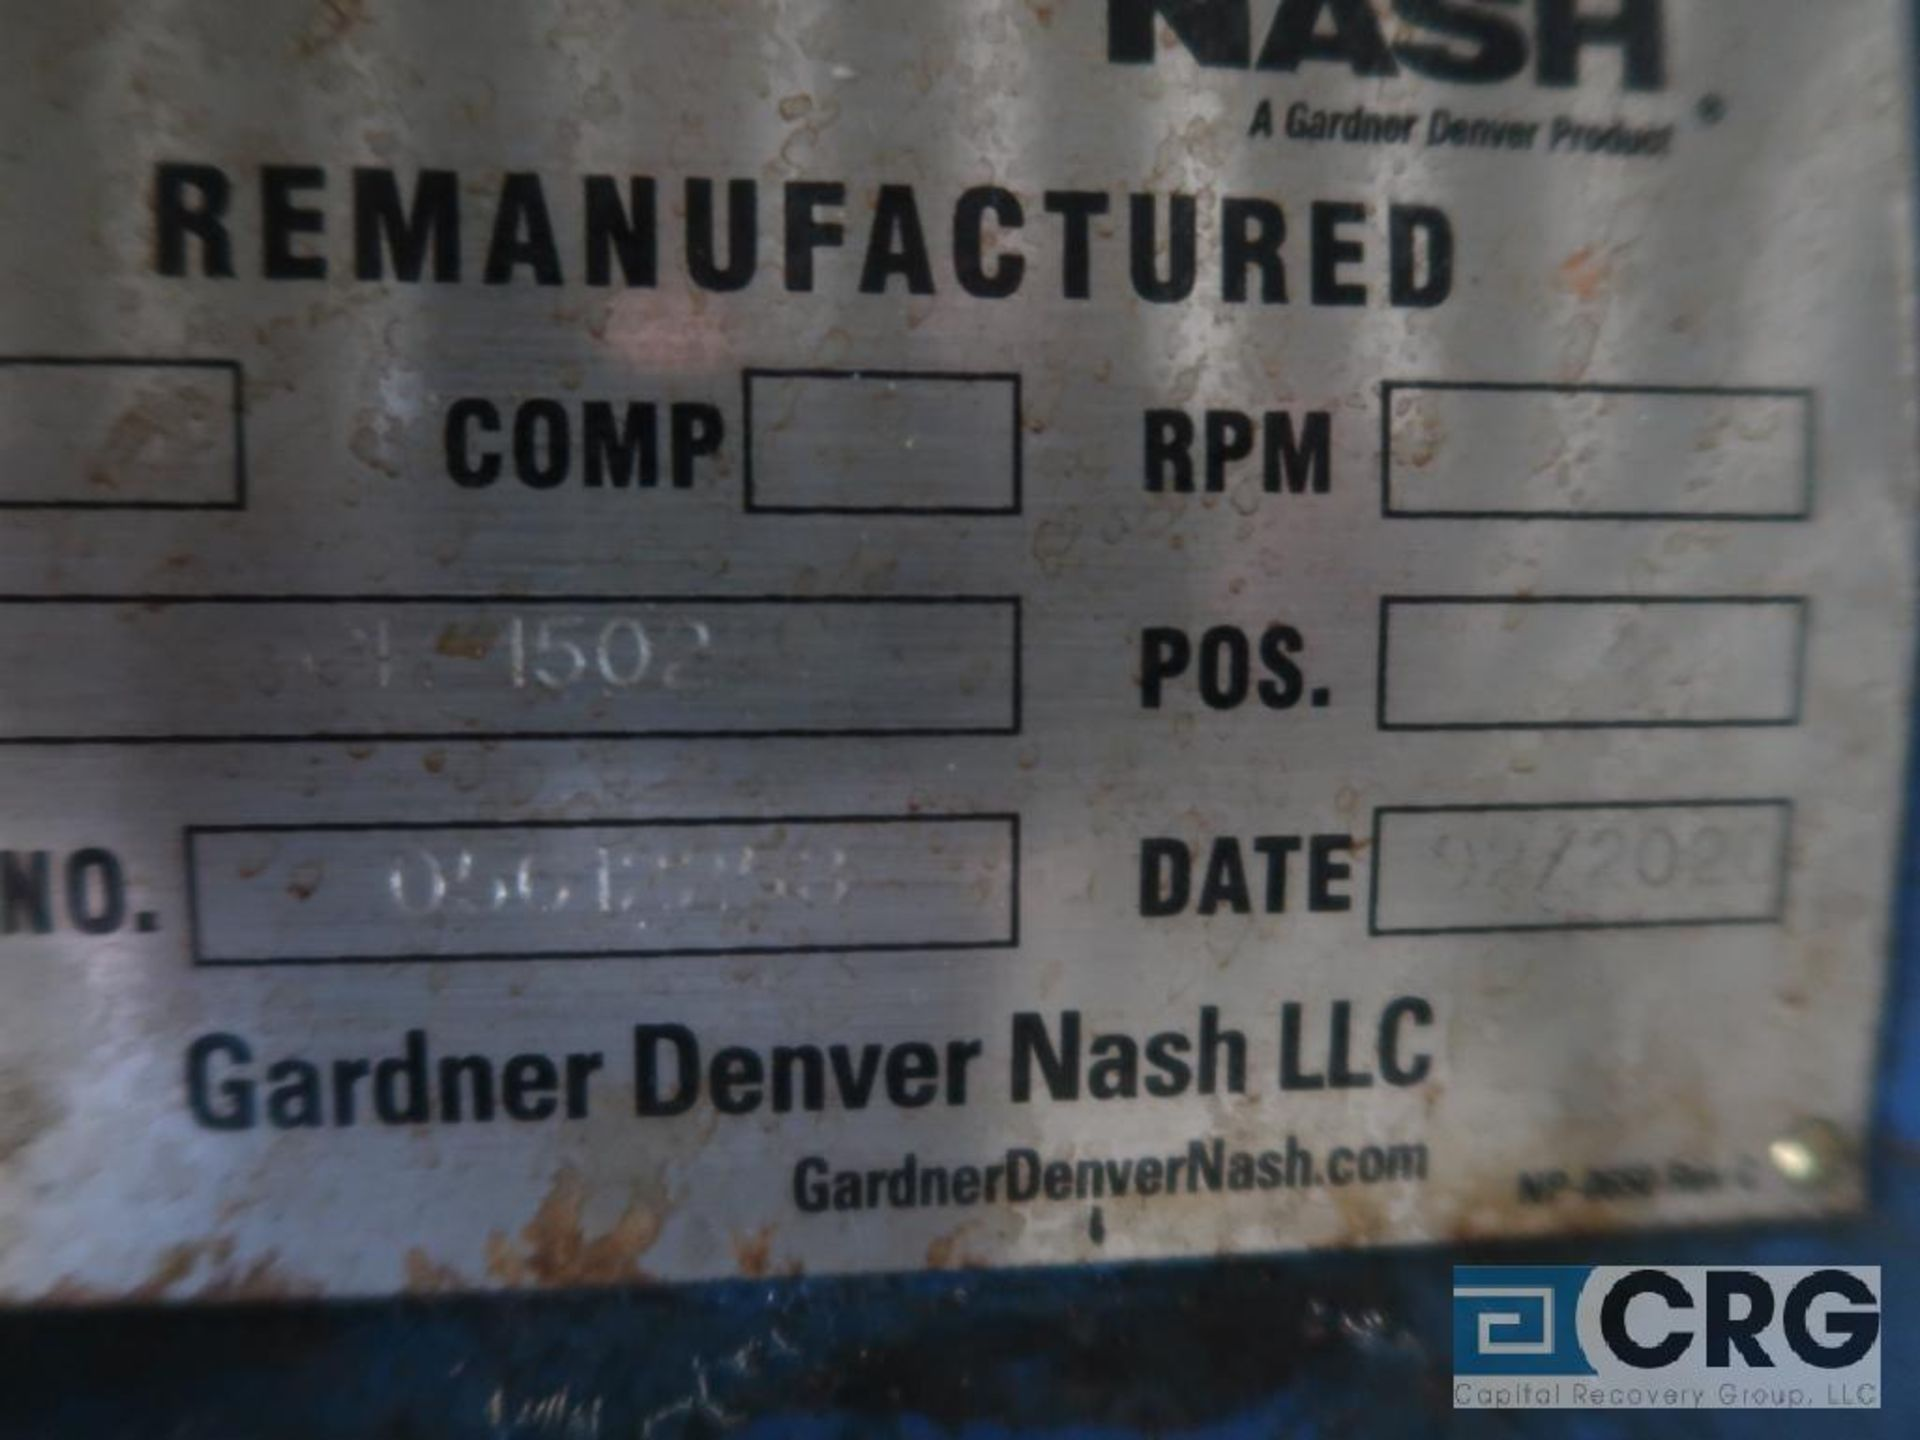 Nash CL1502 vacuum pump, remanufactured year 2020, s/n 05612253 (Off Site Warehouse) - Image 2 of 2